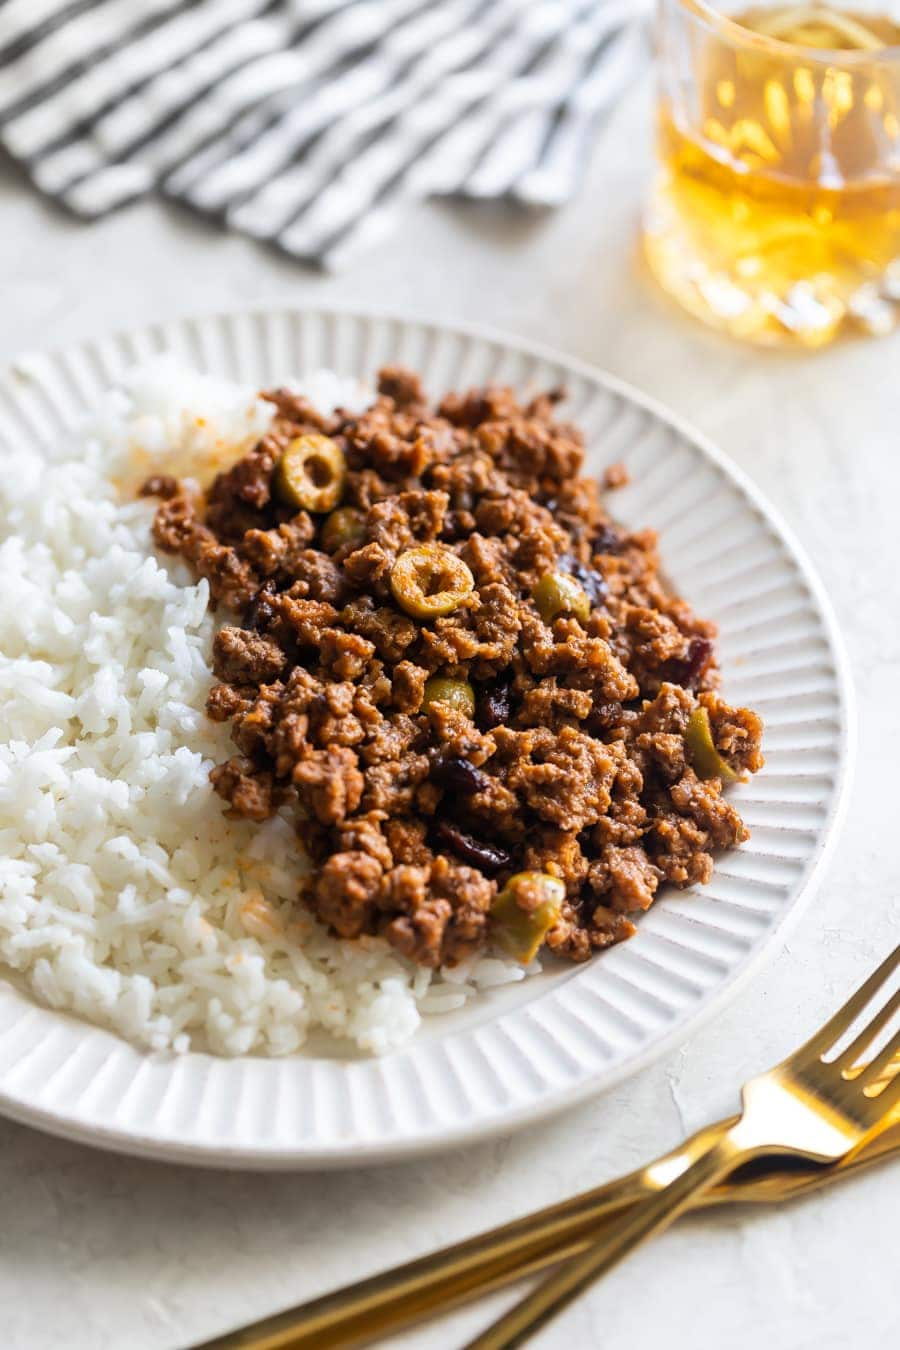 close up of cuban picadillo with white rice, gold fork and knife and a glass of wine